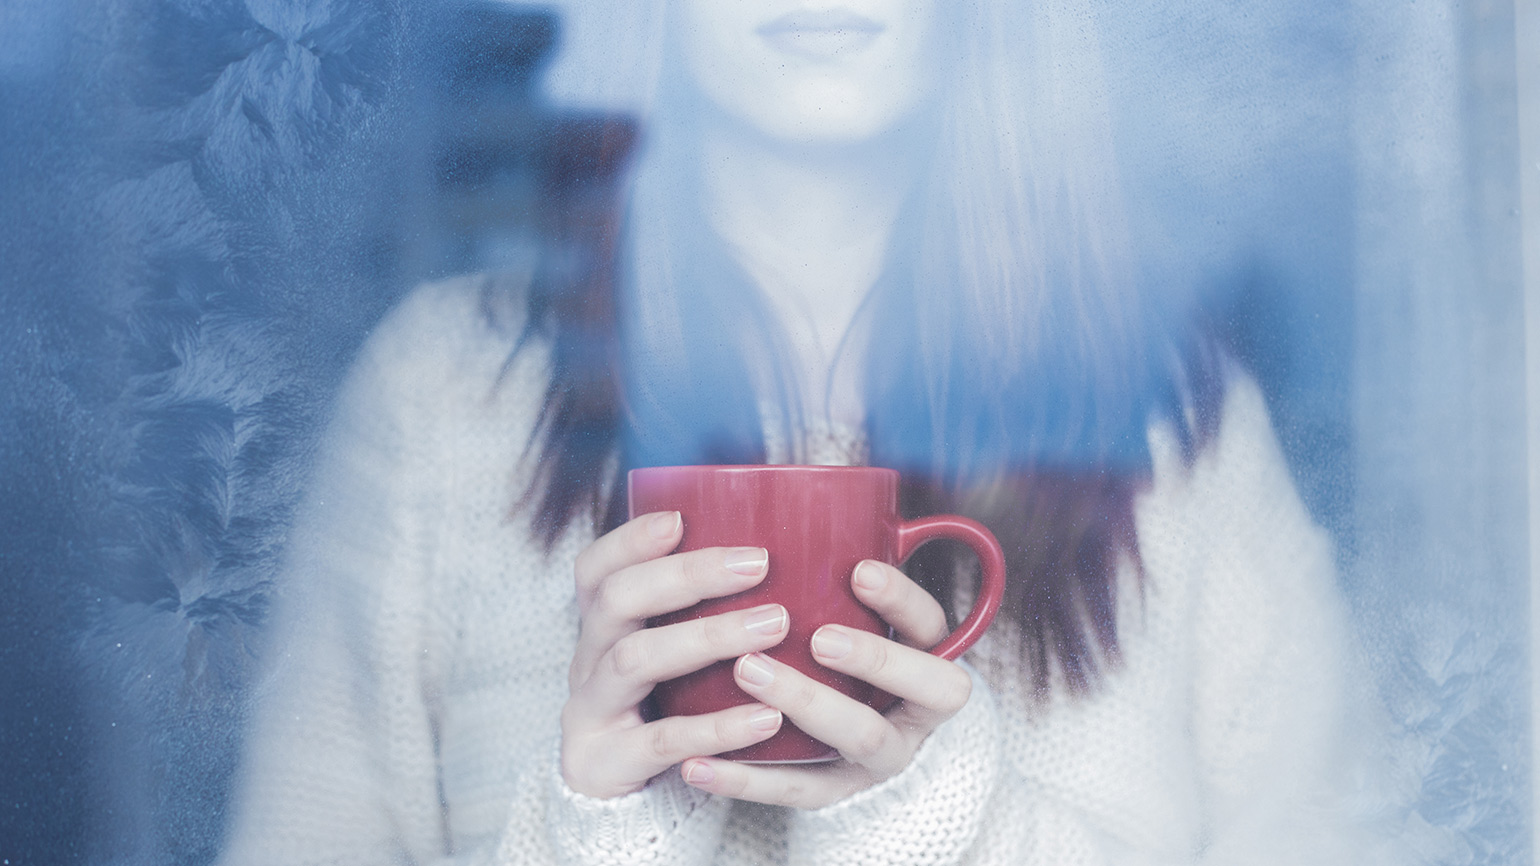 A woman gazes out a window, a warm cup of tea cradled in her hands